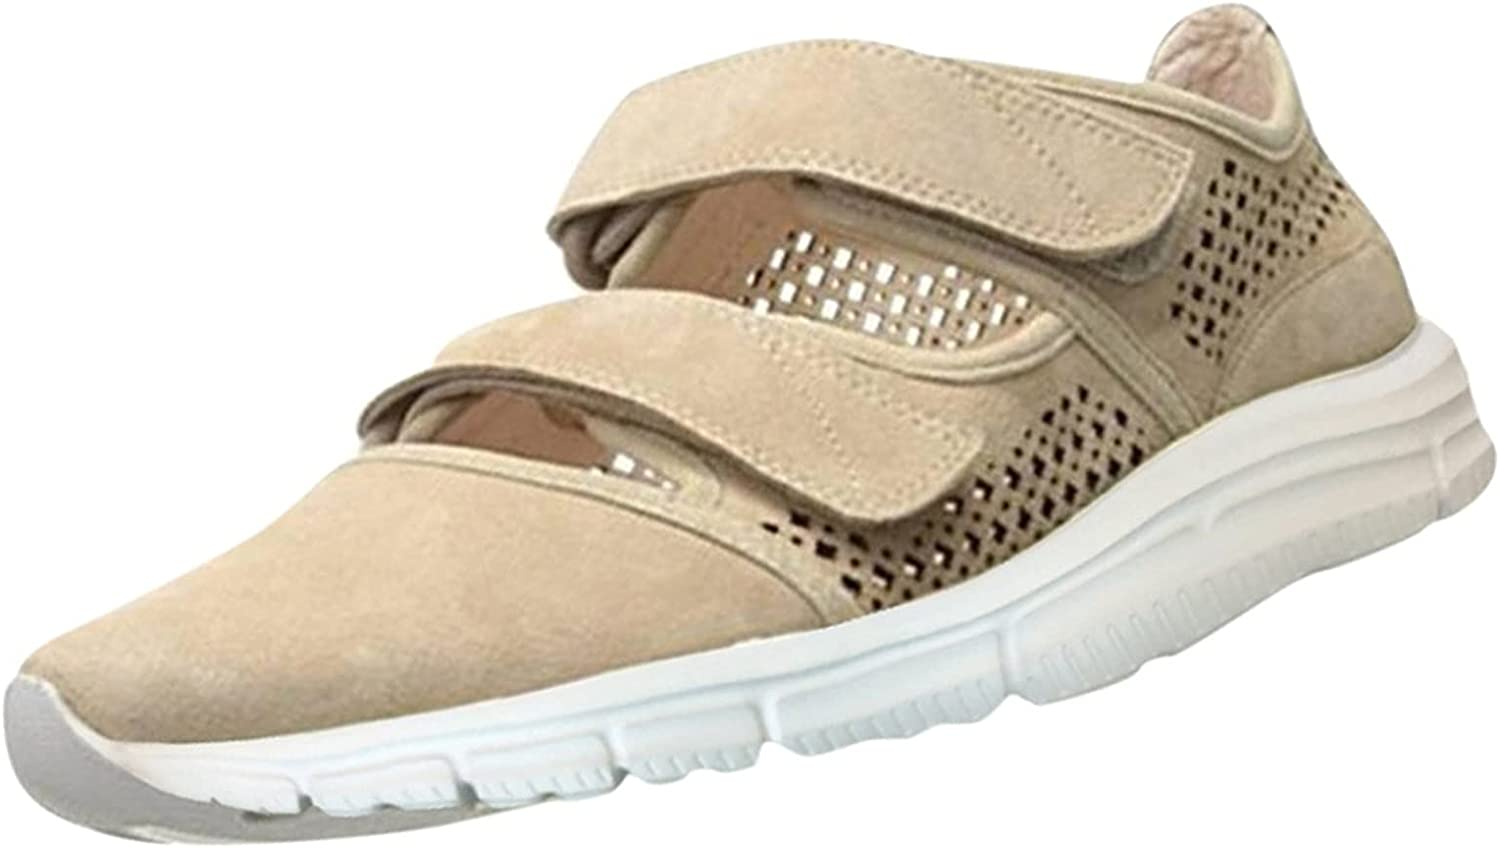 FADK Fashion Women's Light Comfortable Sneakers Solid Color Hollow Out Velcro Casual Shoes